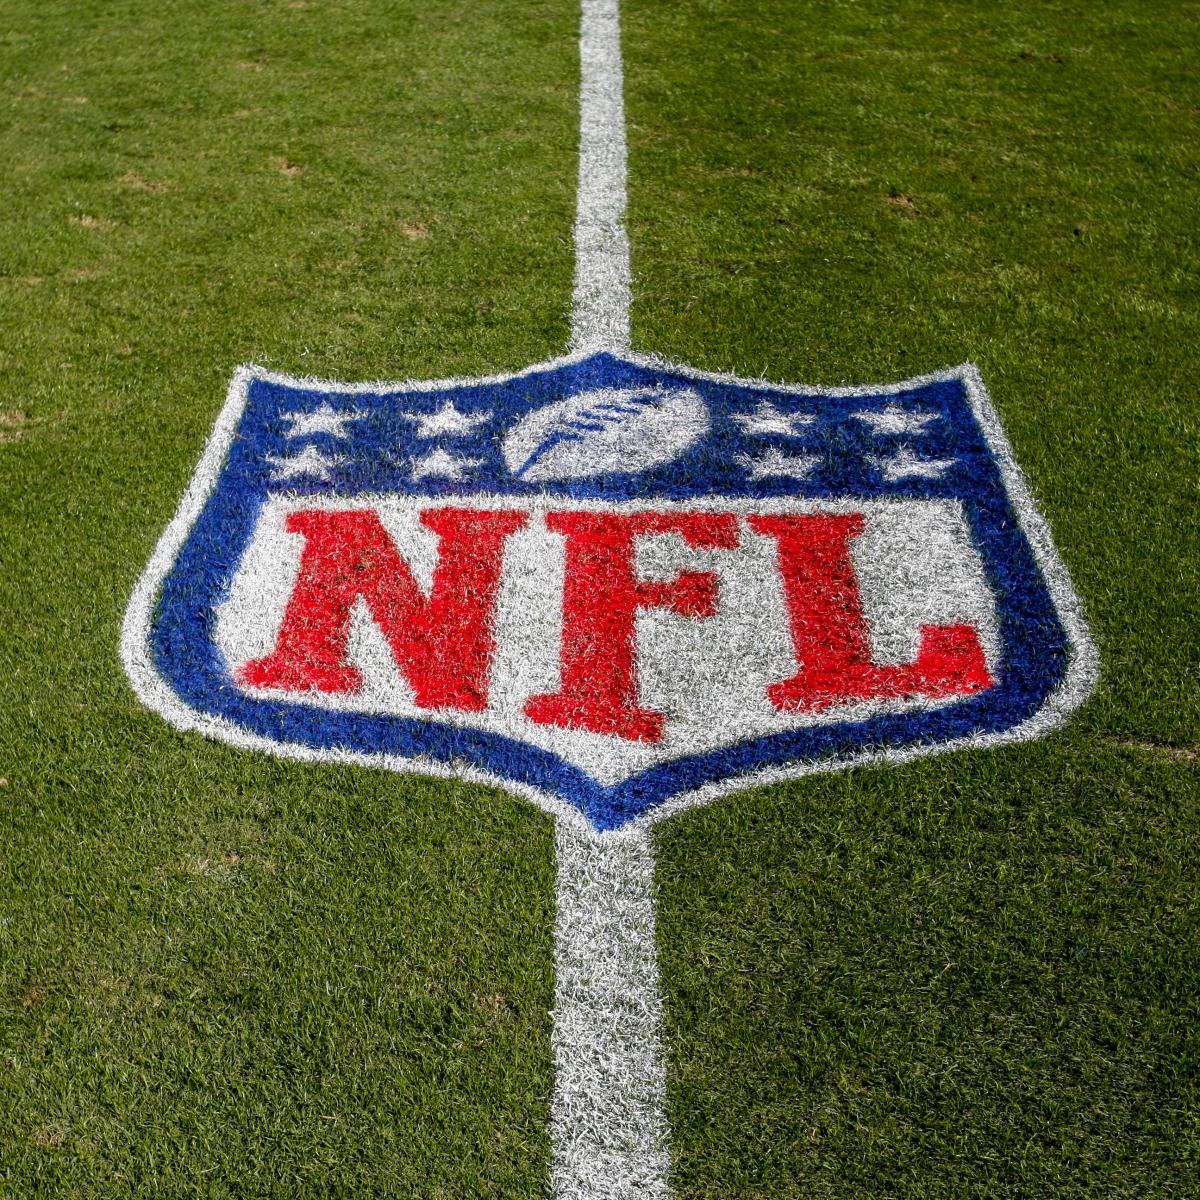 Some NFL Teams Canceling Activities After Irregularities in COVID-19 Results